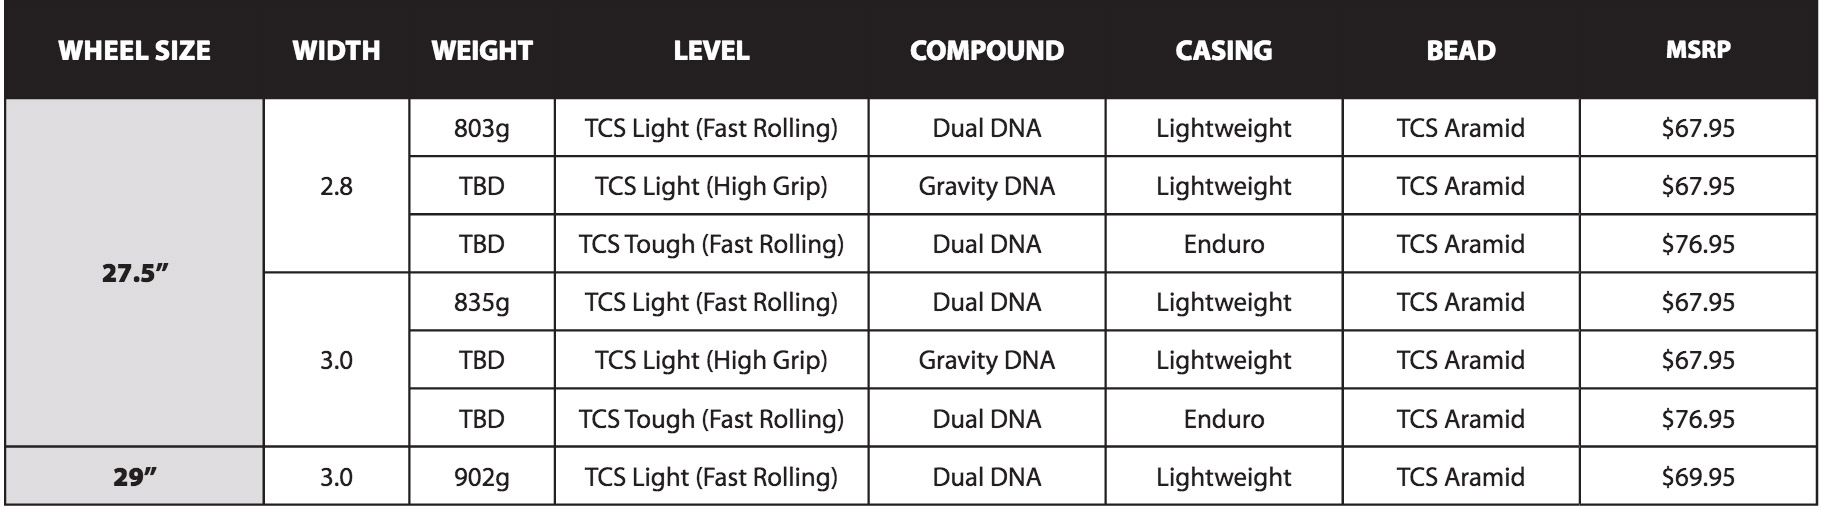 A chart detailing price, compound, casing, and weight for the new WTB Ranger.